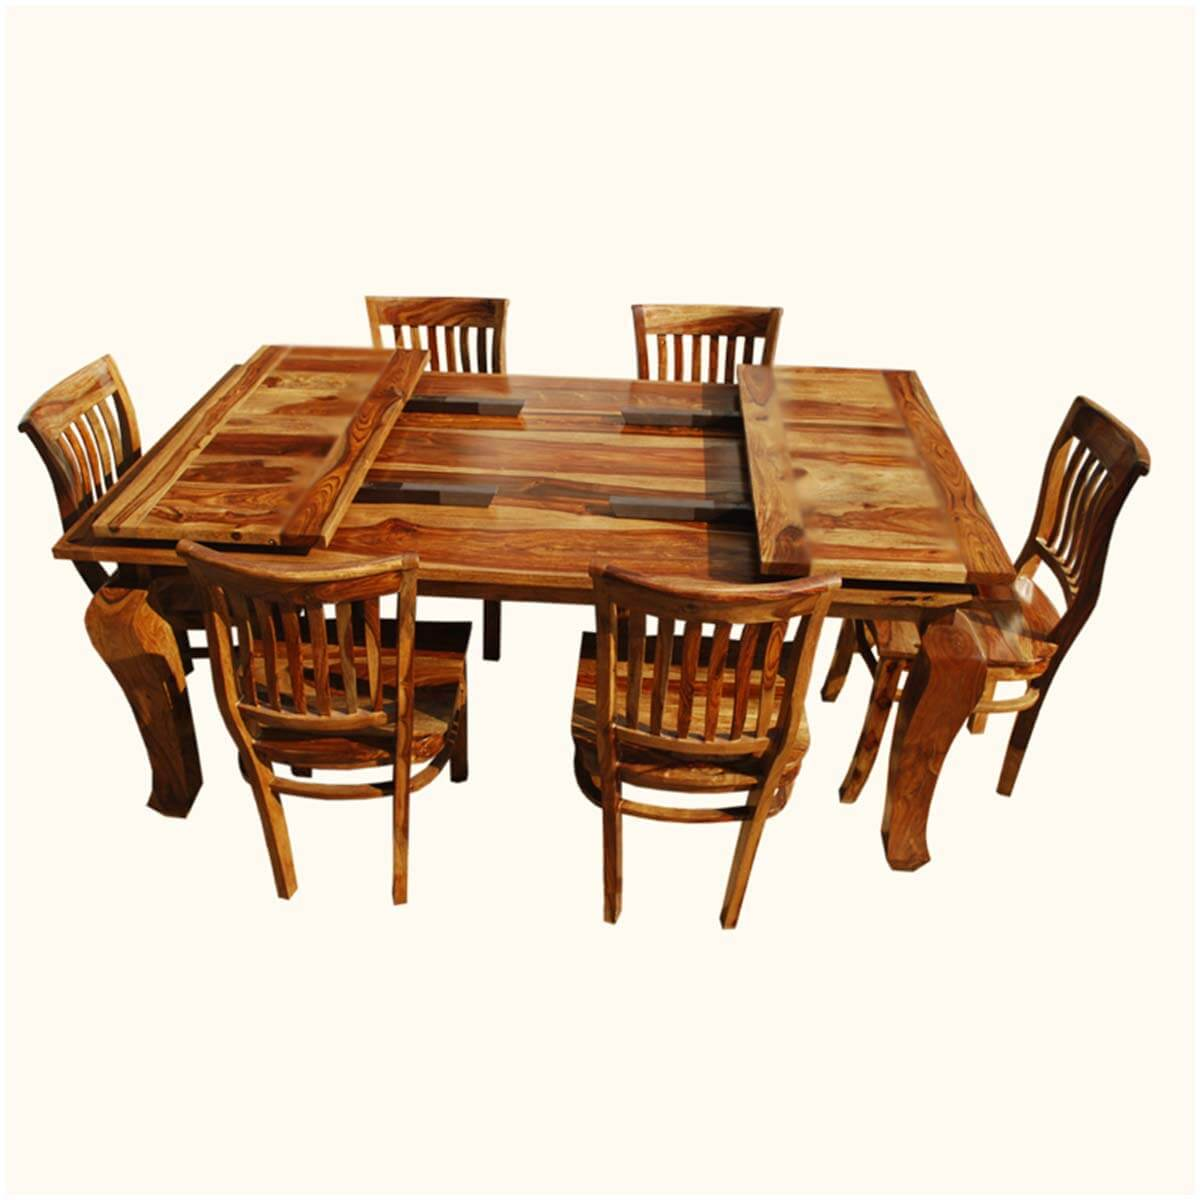 Rustic lincoln study dining table 6 barrel back chairs w for Dining table 6 chairs